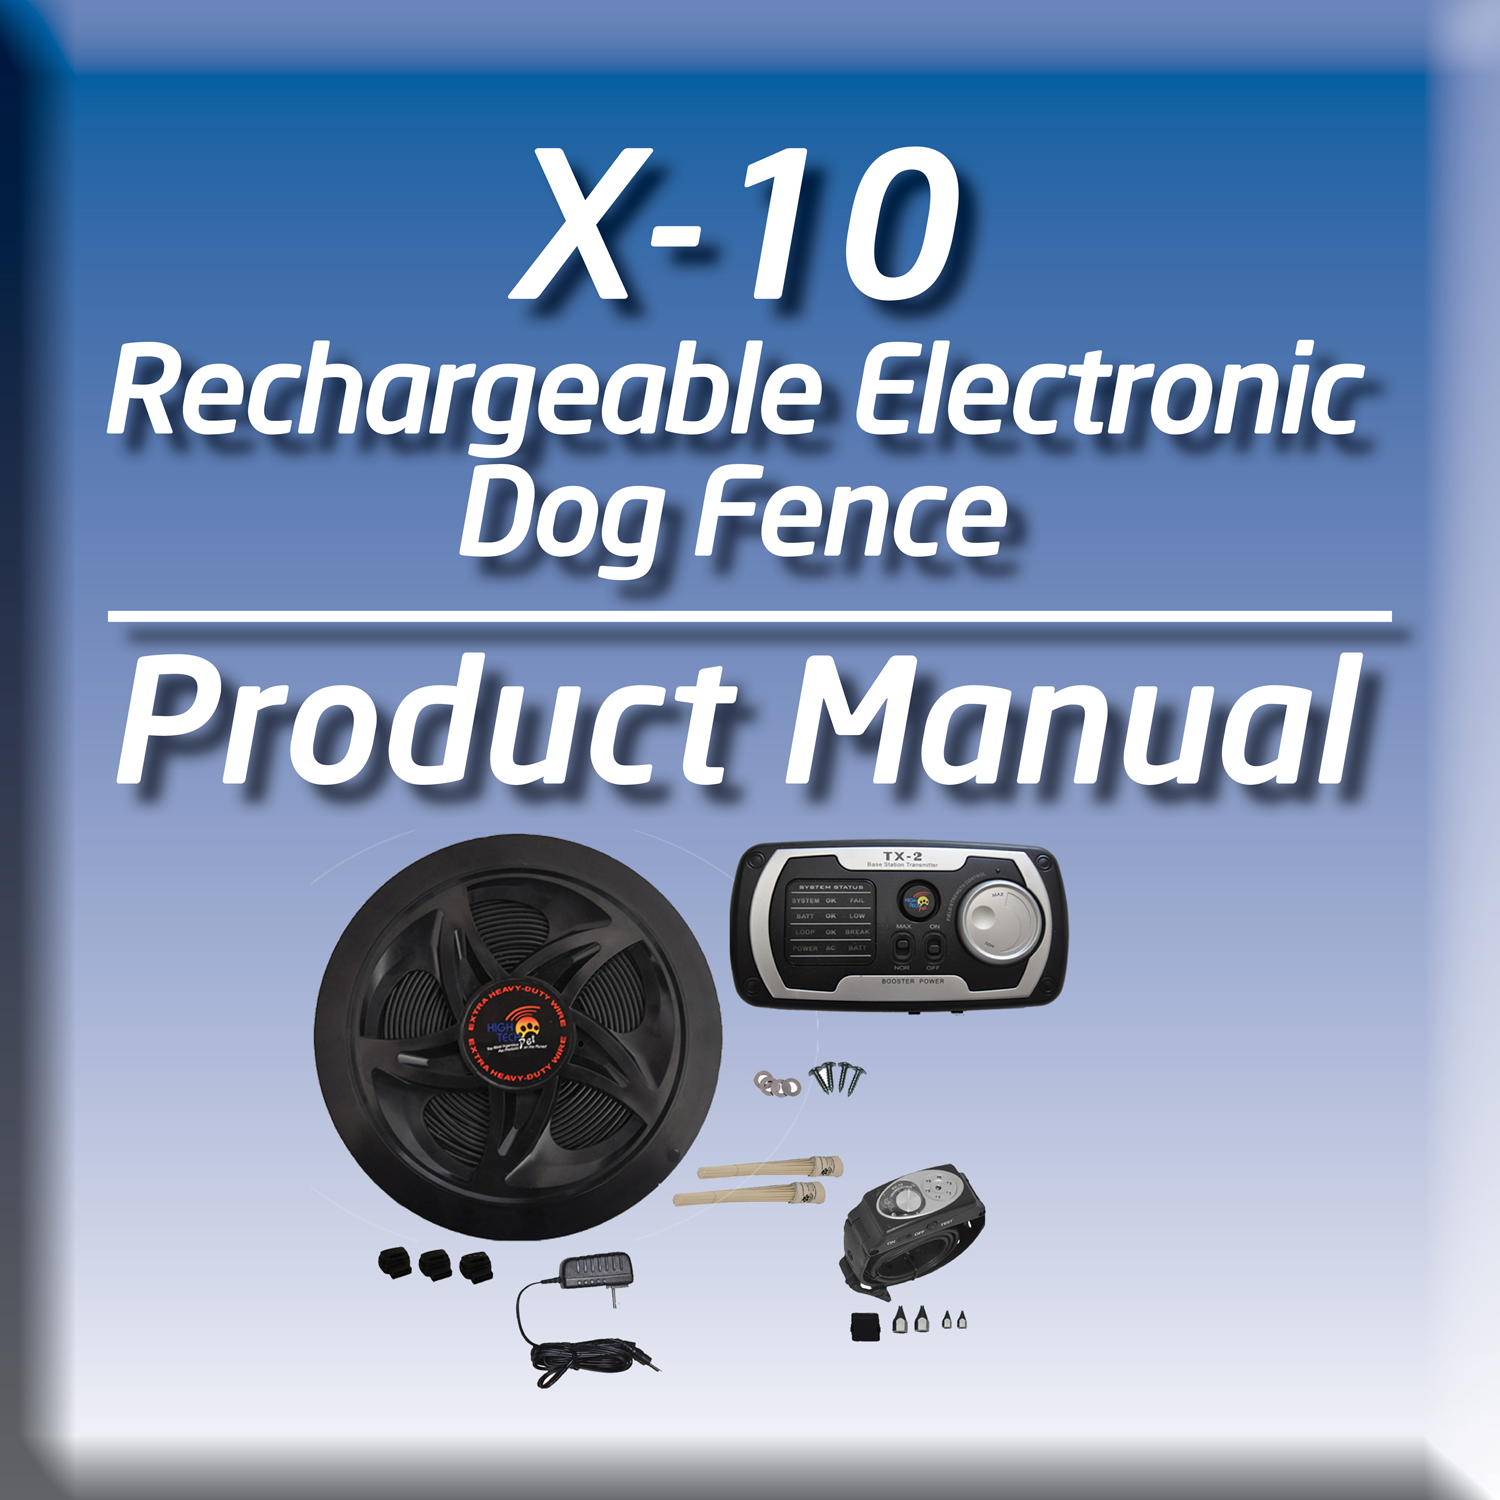 Our X-10 electric dog fence manual is here for you